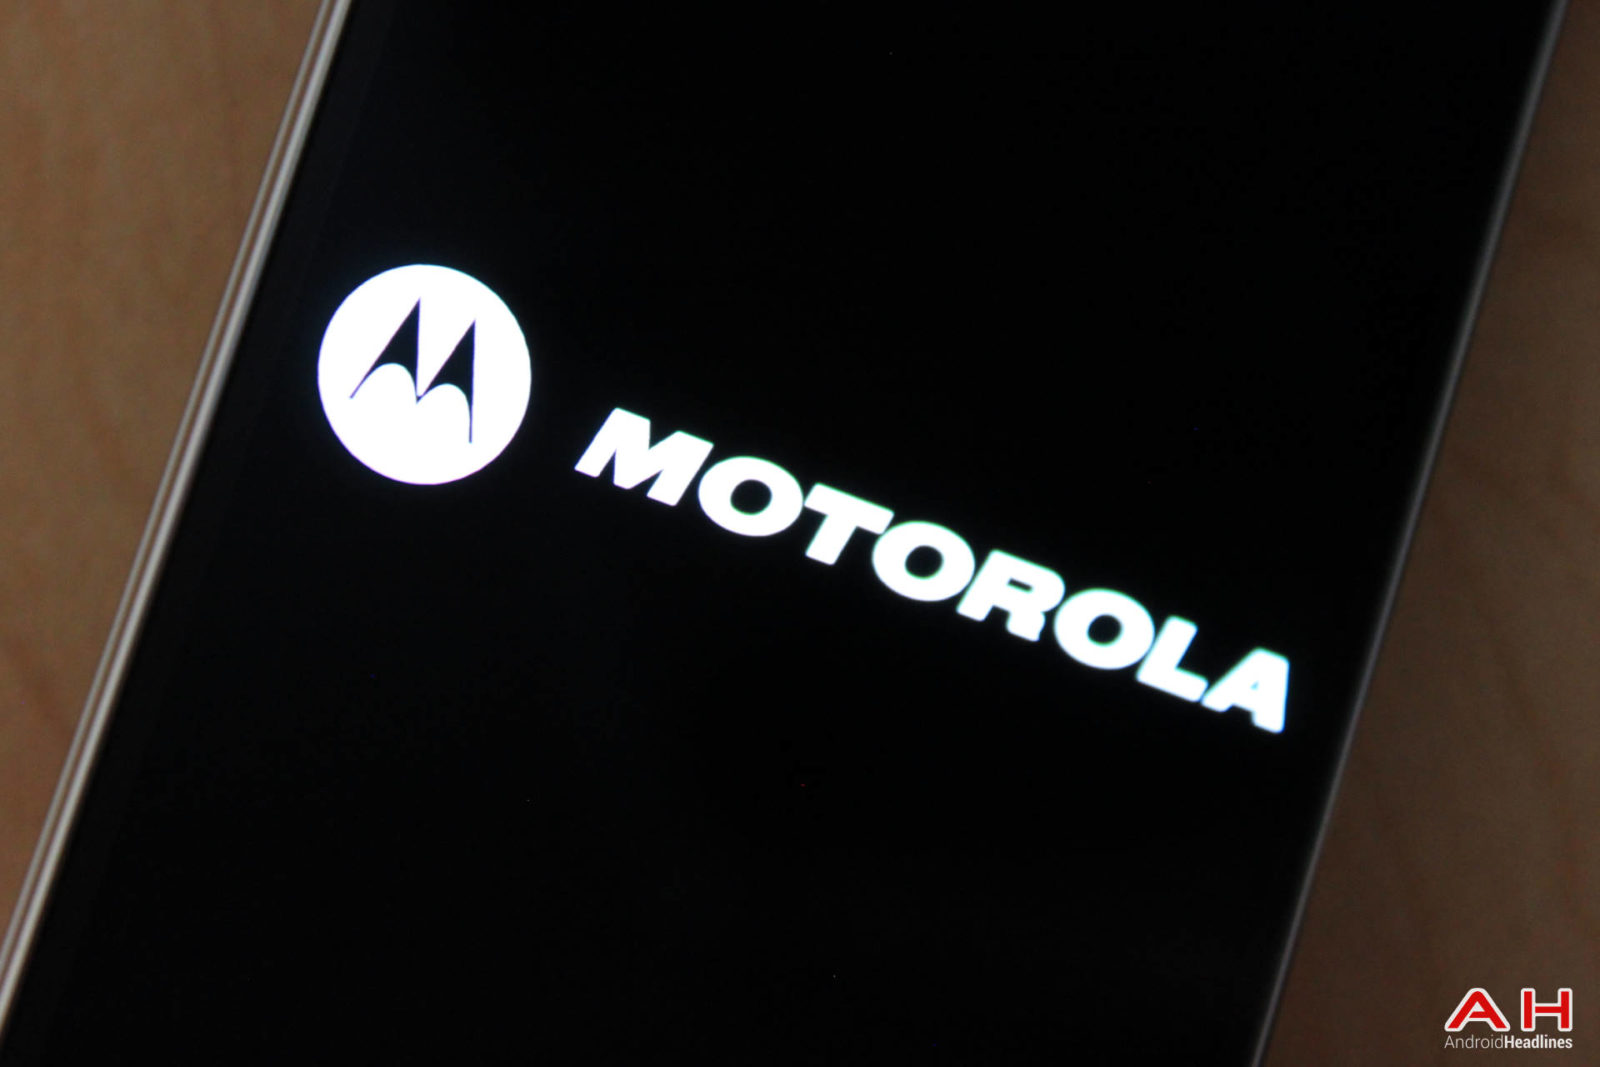 Motorola Launches Visual Voicemail App So You Can See The Voicemails